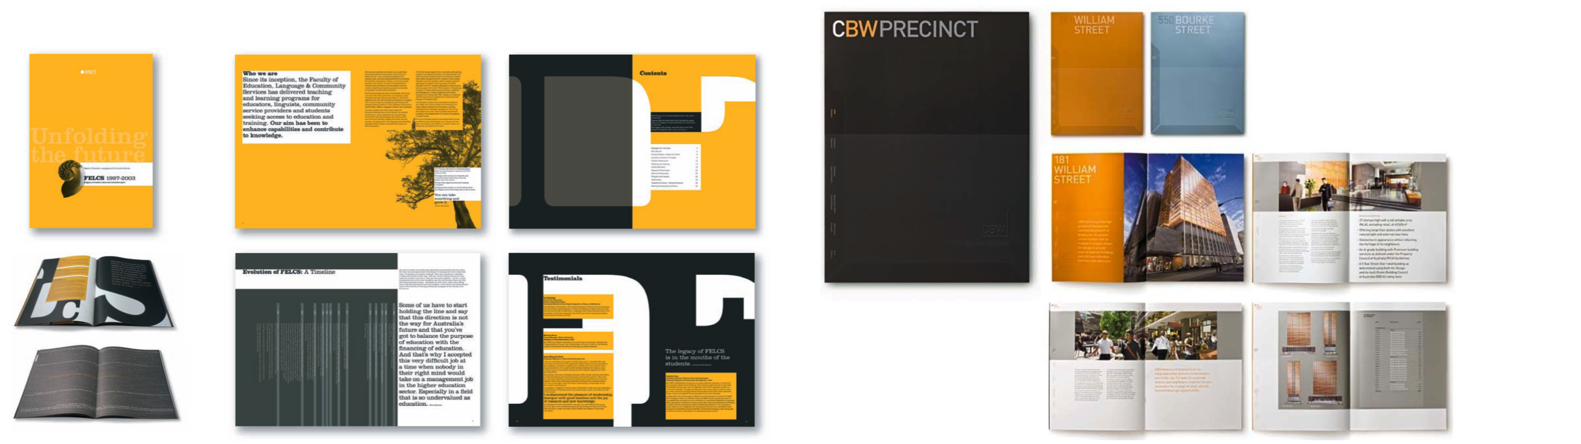 Annual Reports for RMIT and CBW Precinct